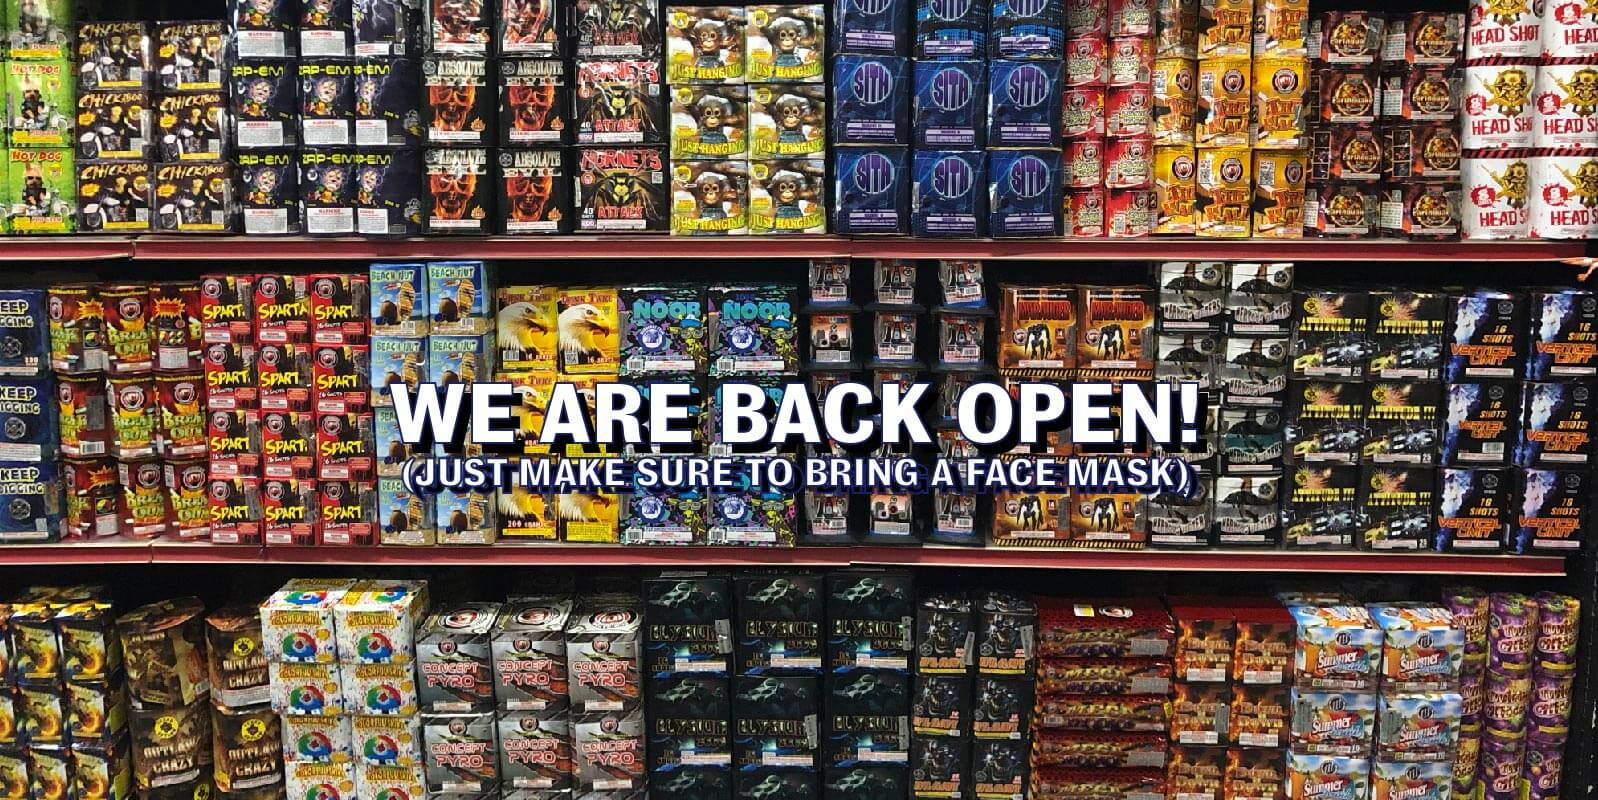 Intergalactic Fireworks is Now Back Open in PA and NJ Due to Being Shut From Corona, Covid-19